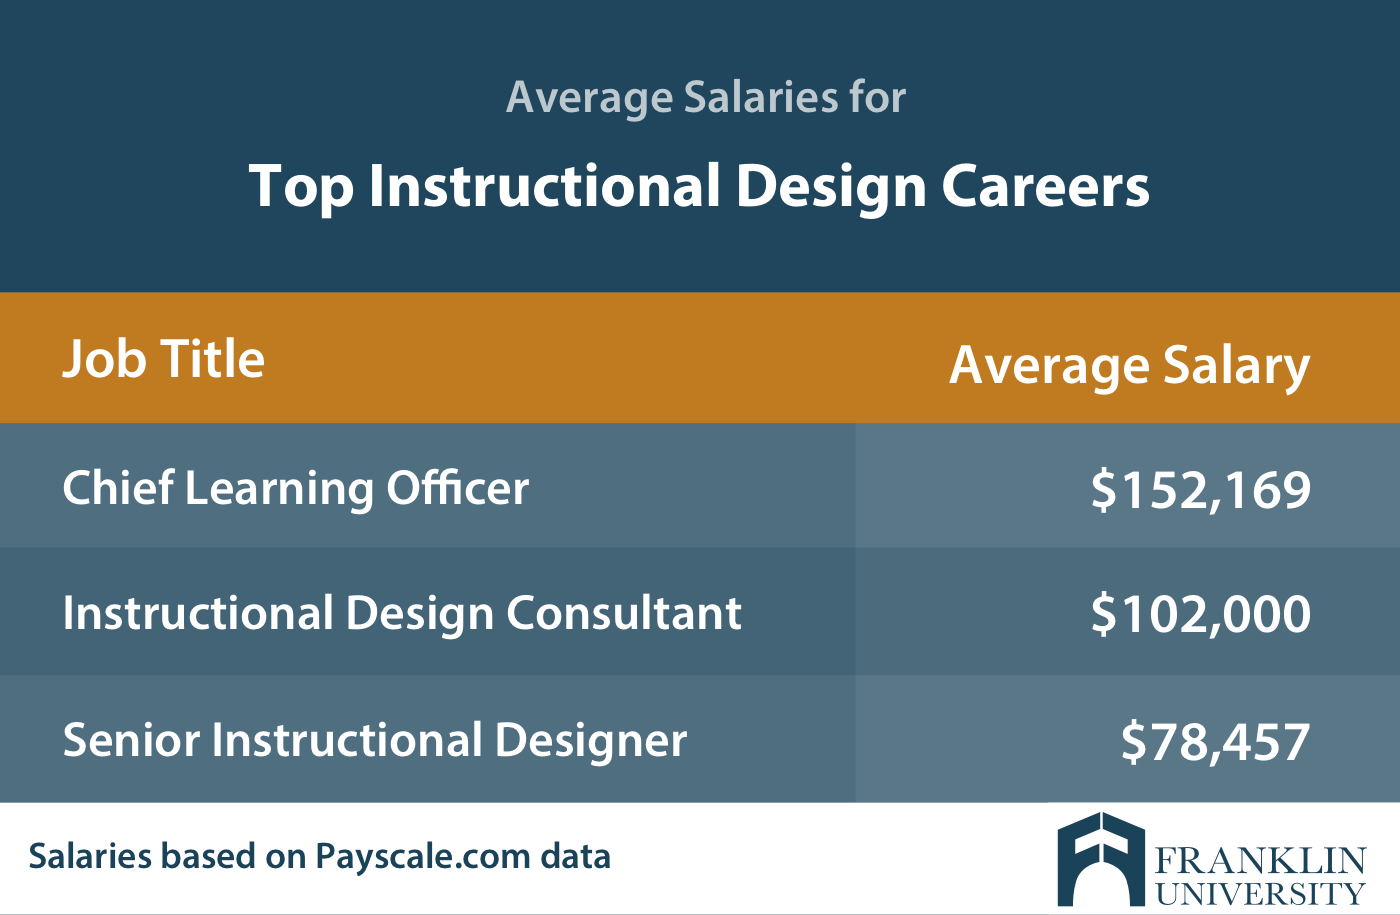 graphic describing the average salaries for top instructional design careers